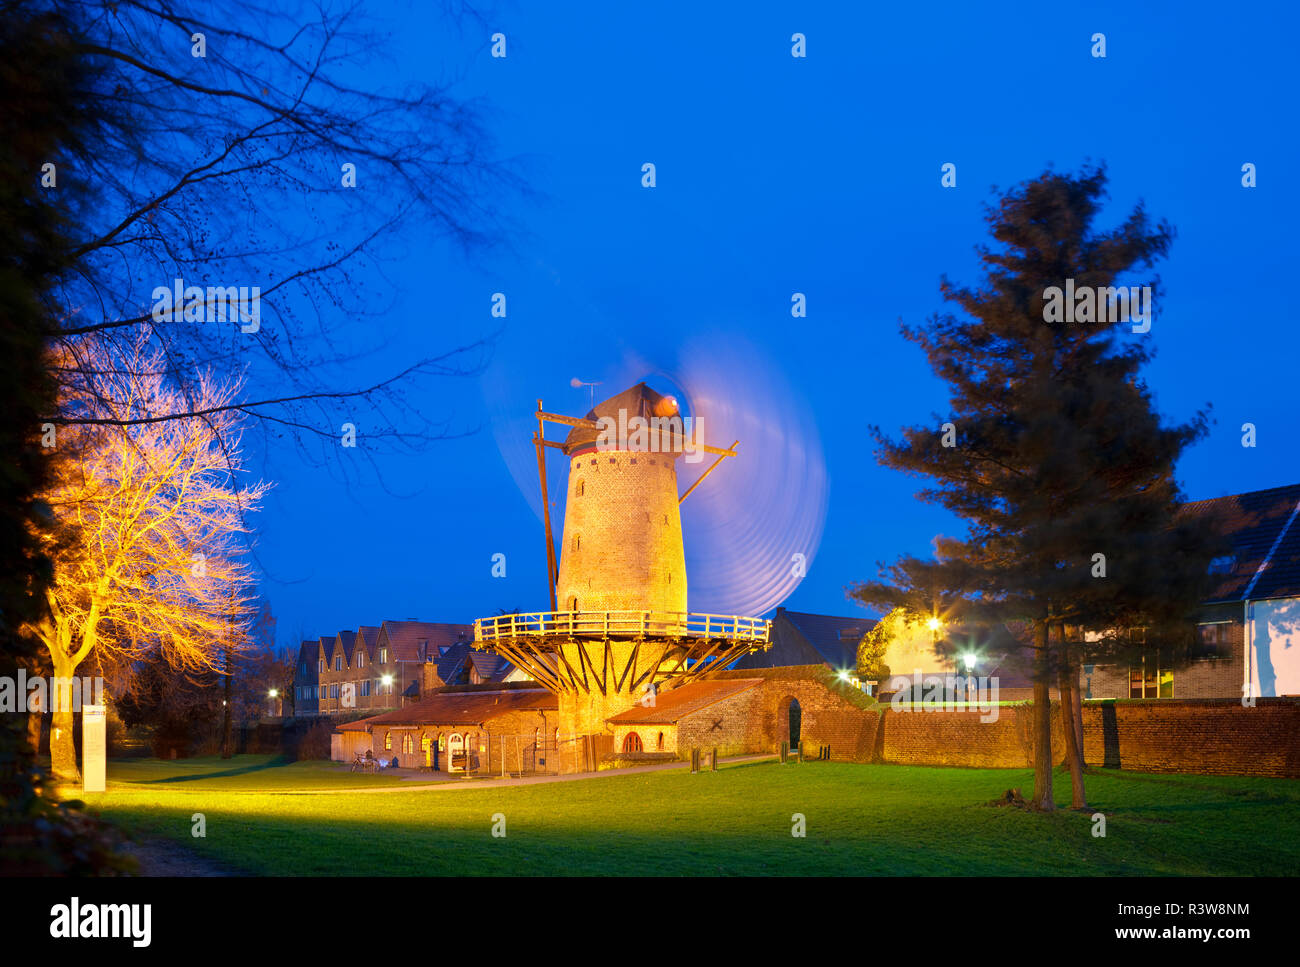 The old Kriemhild Windmill (Kriemhild-Muehle) is part of the surrounding wall of Xanten, Germany. Night shot with deep blue sky. - Stock Image